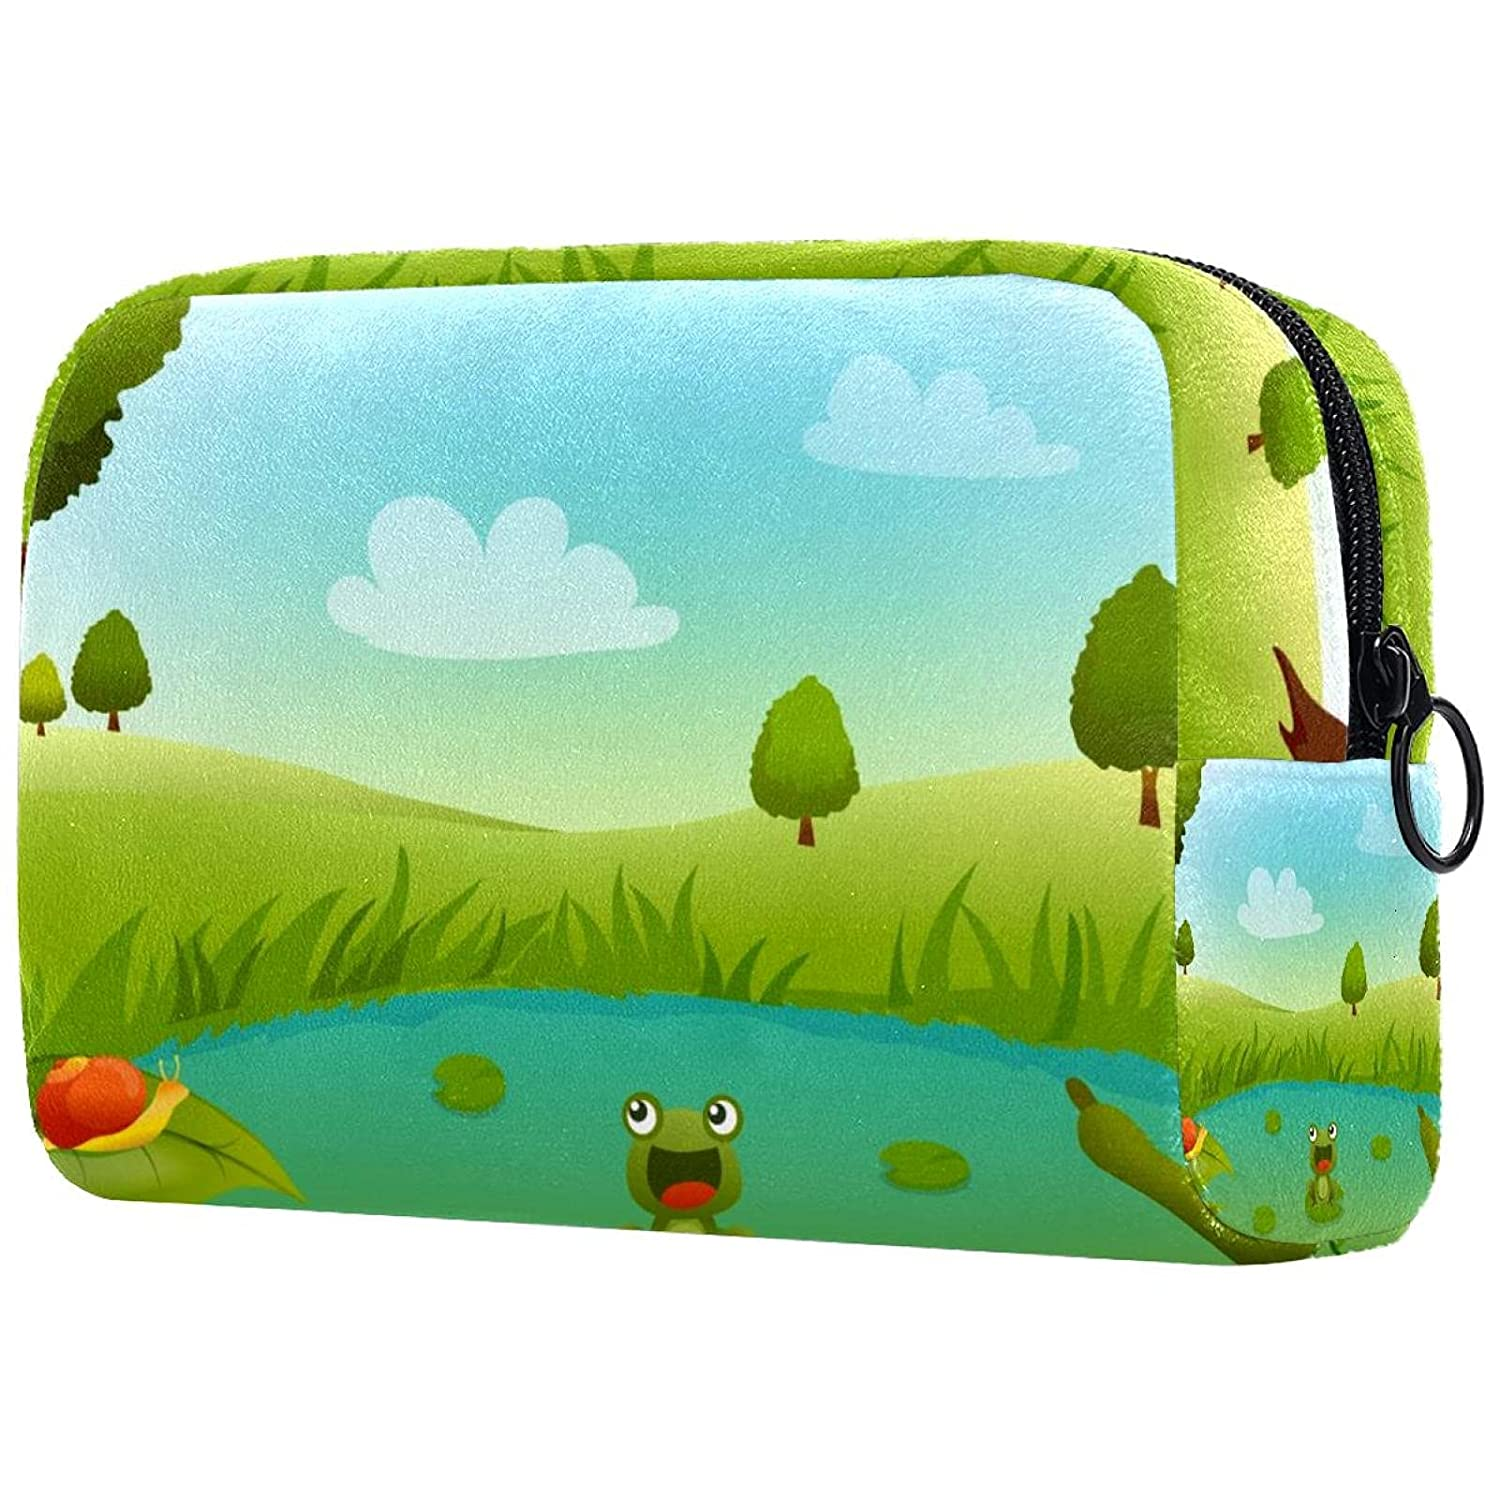 Frog In Luxury goods Swamp Makeup Bags Portable Cosmetics Very popular Travel Bag Cos Tote